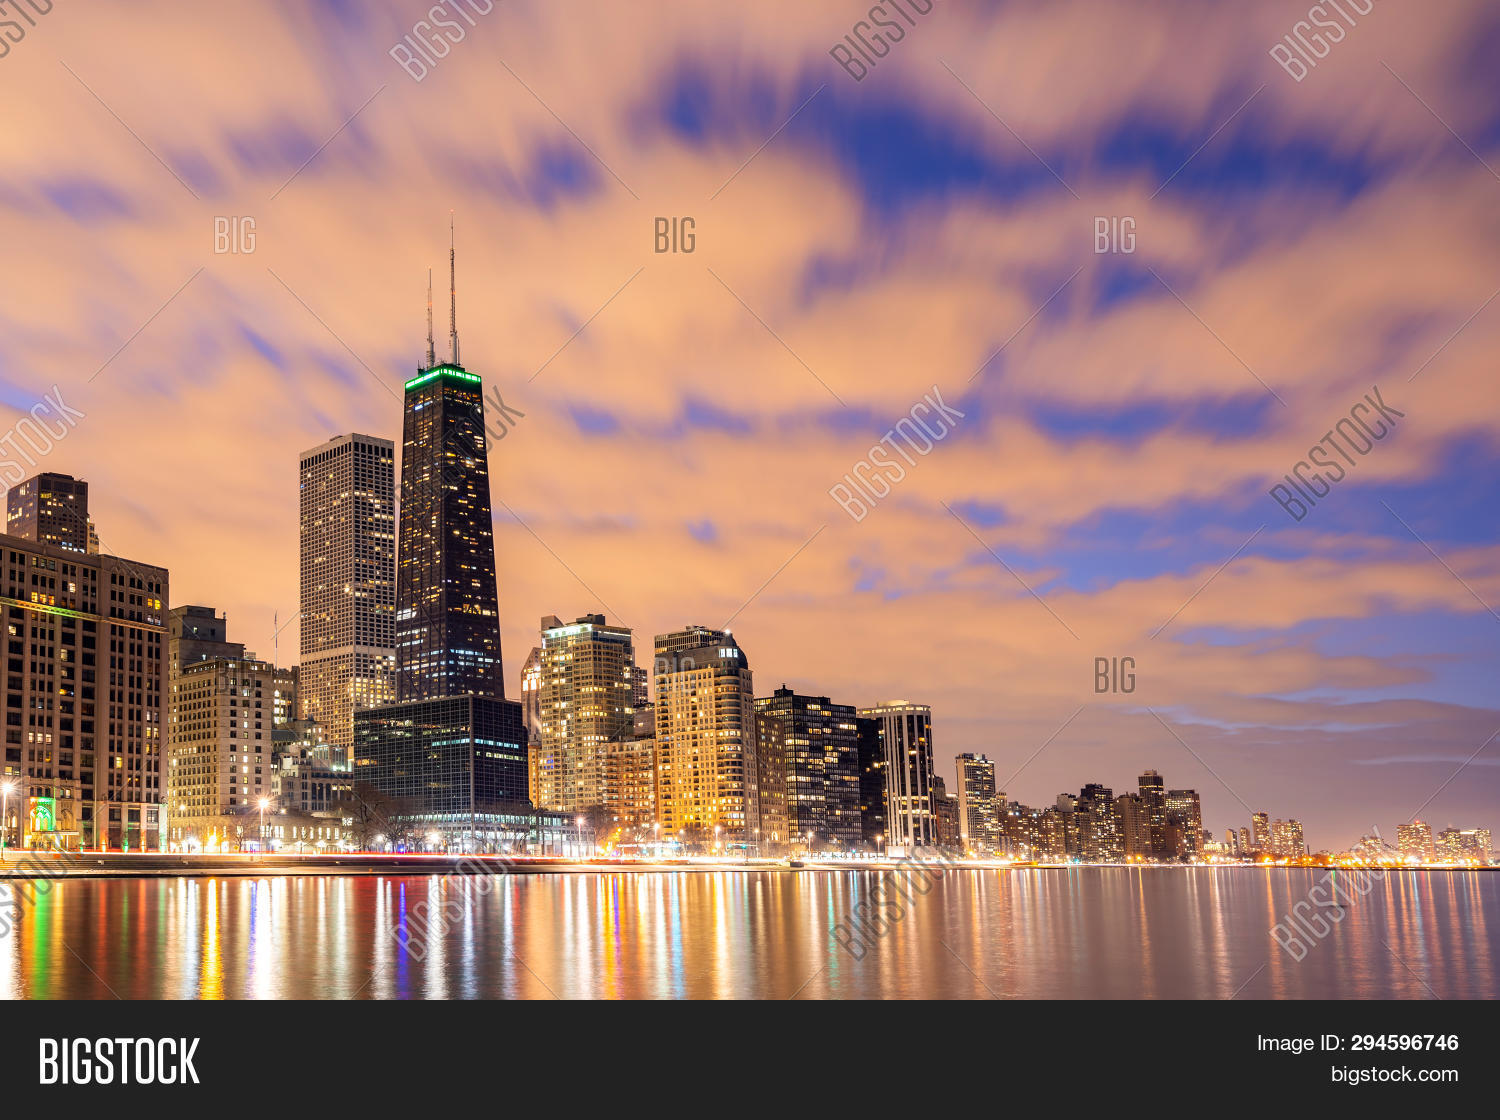 Sunset at Chicago Skylines building at Chicago downtown along Lake Michigan in Chicago City Illinois